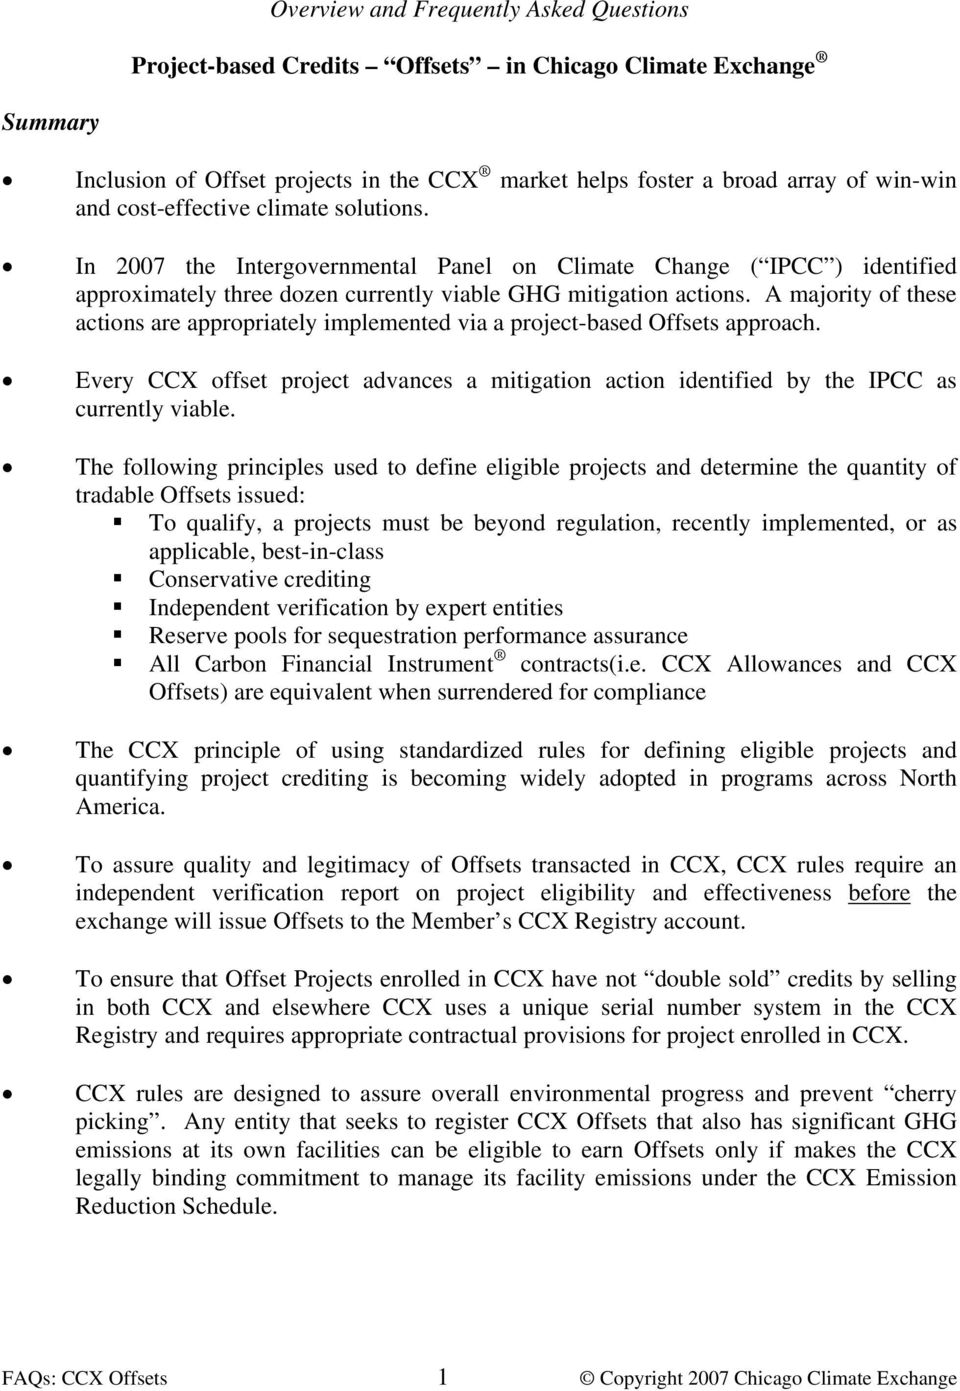 A majority of these actions are appropriately implemented via a project-based Offsets approach. Every CCX offset project advances a mitigation action identified by the IPCC as currently viable.